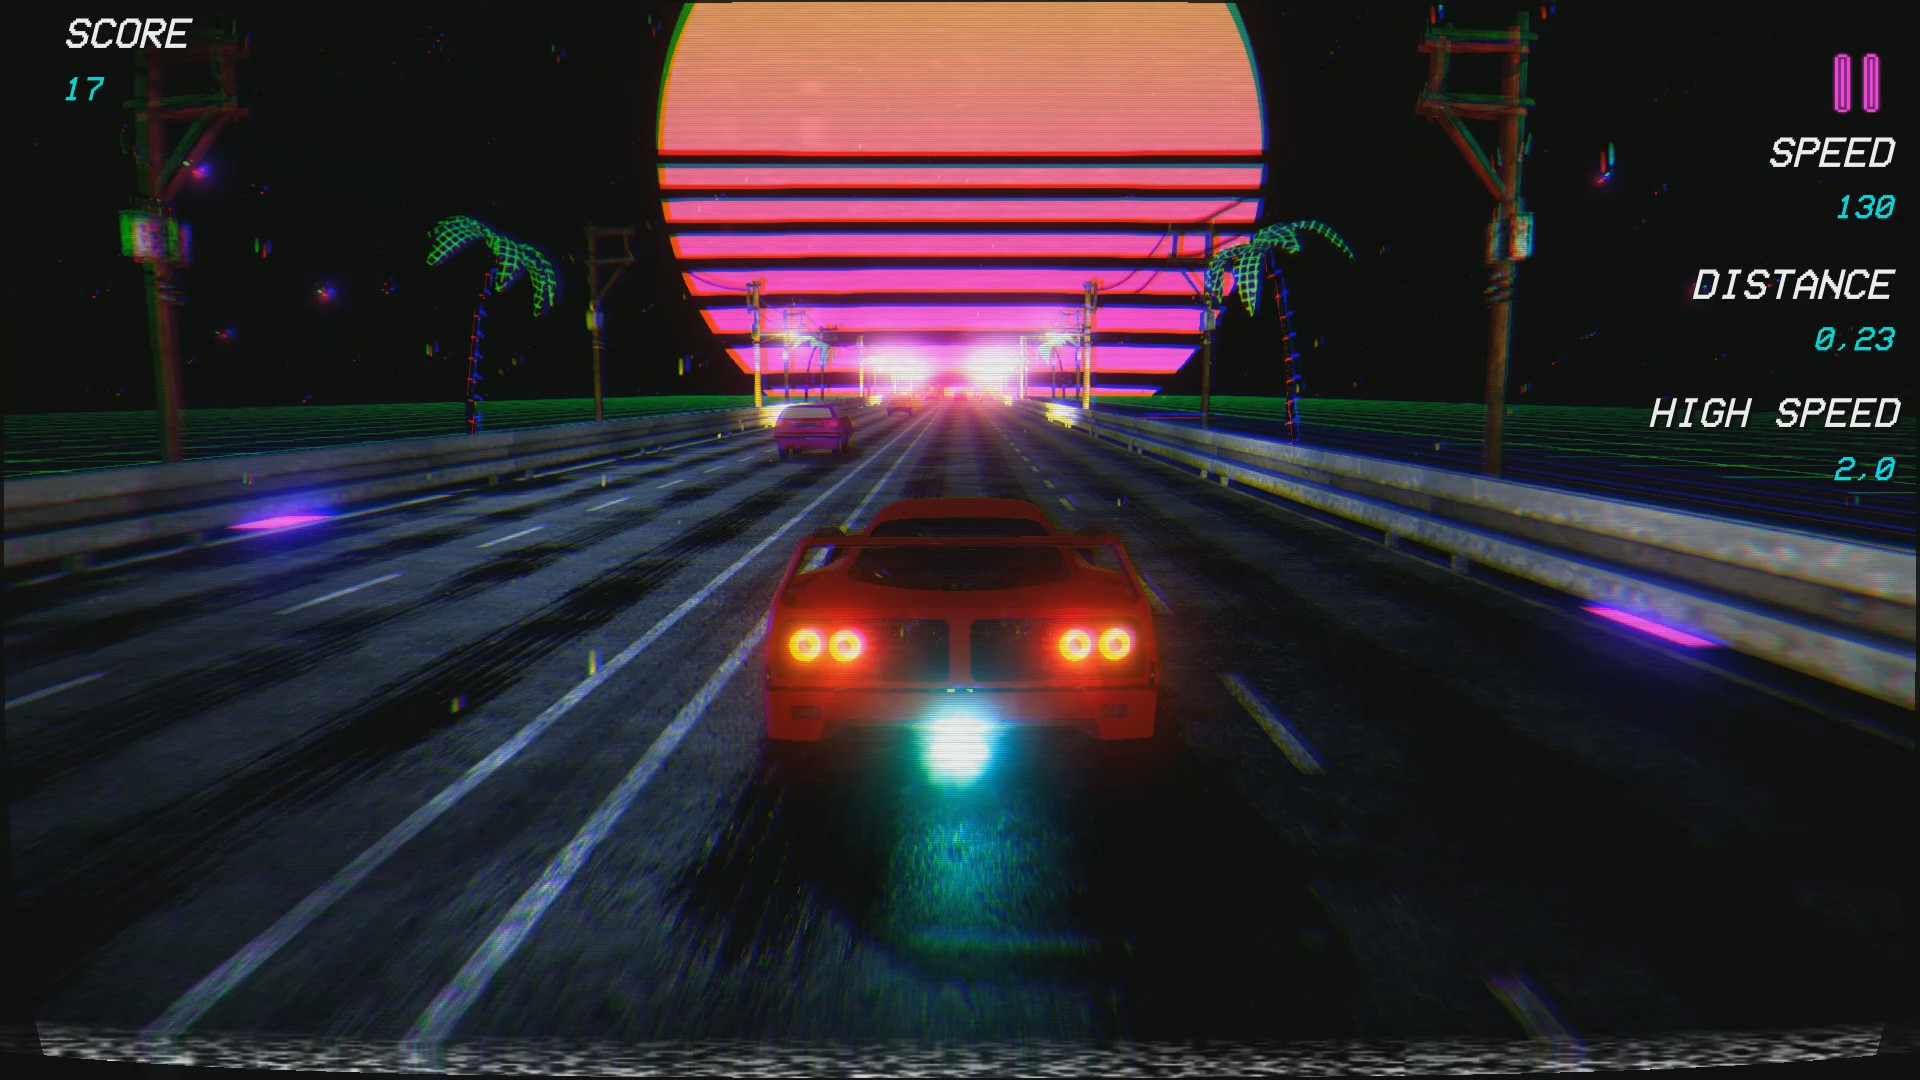 Find the best laptop for Retrowave